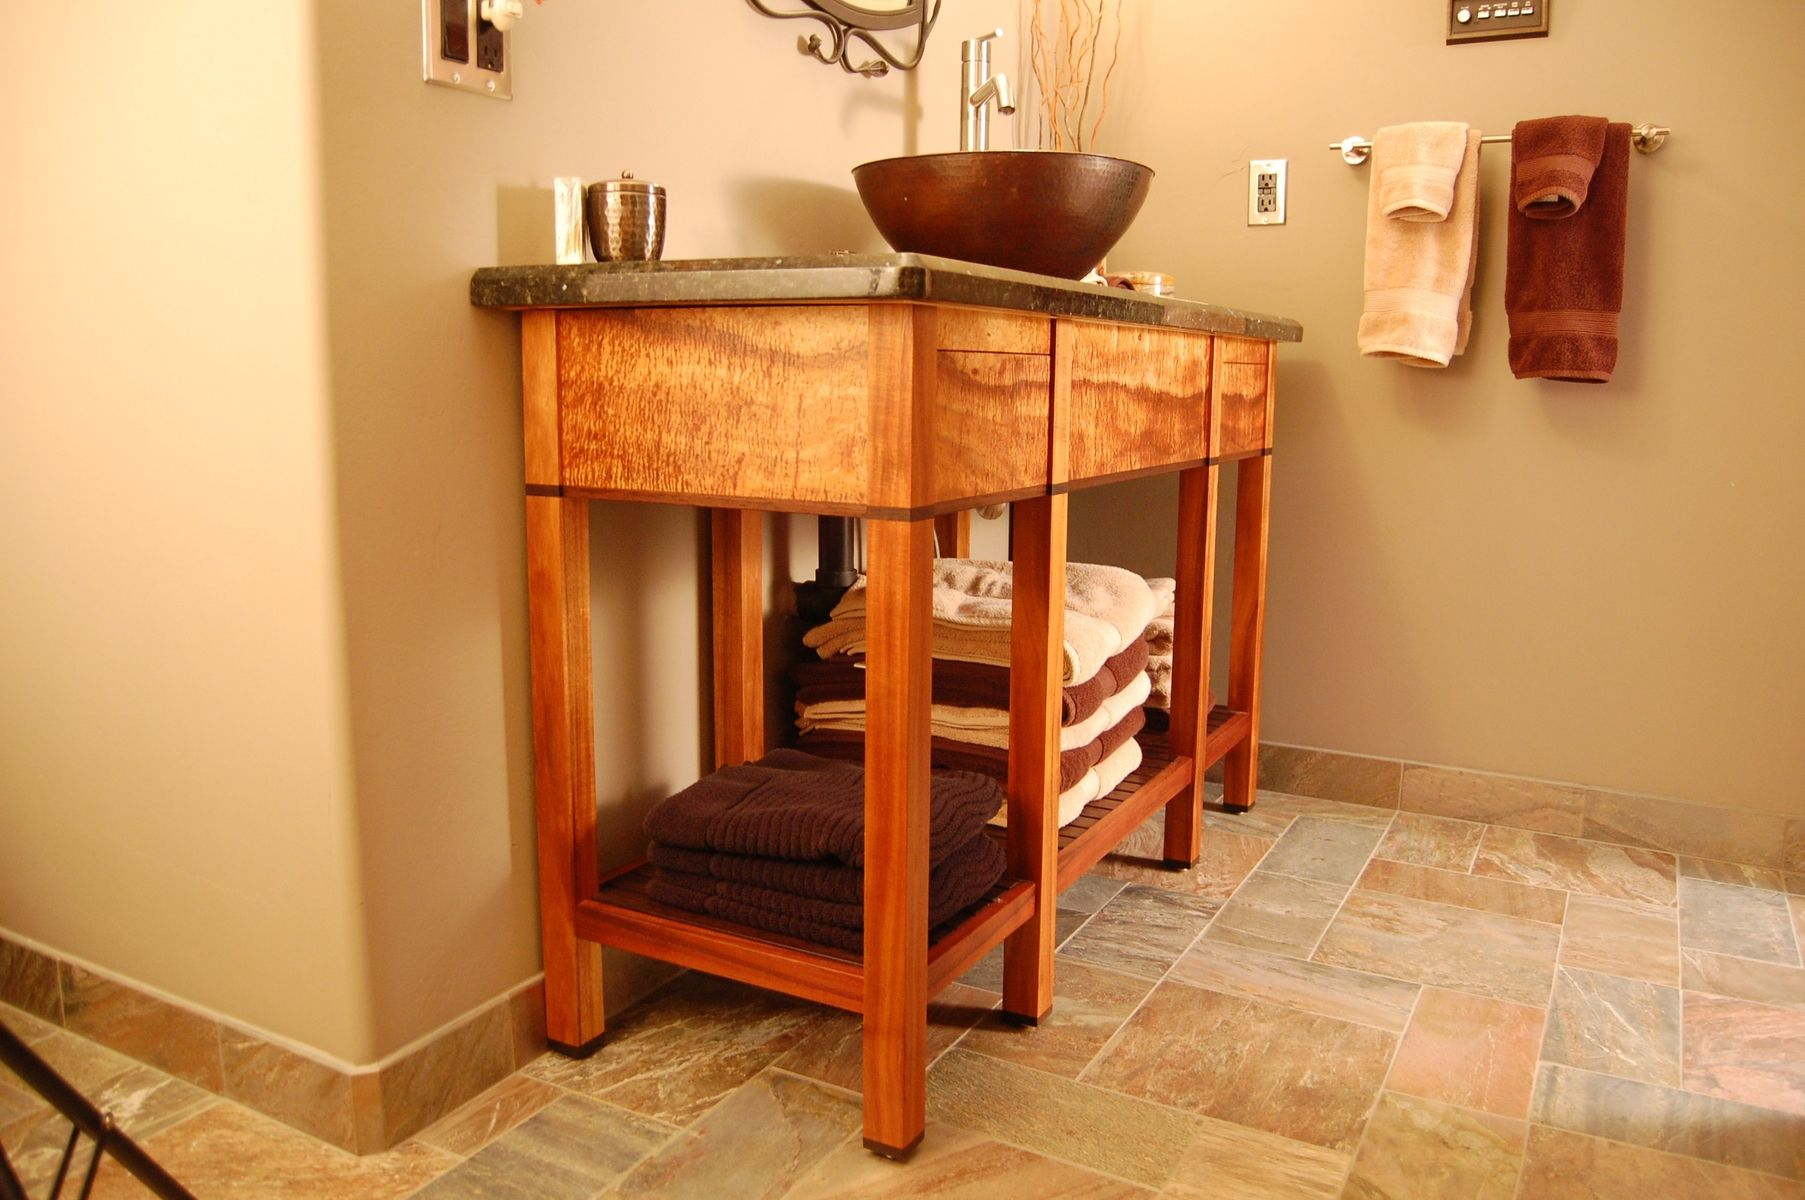 Hand Made Bathroom Vanity by Mcfinn Designs  CustomMadecom